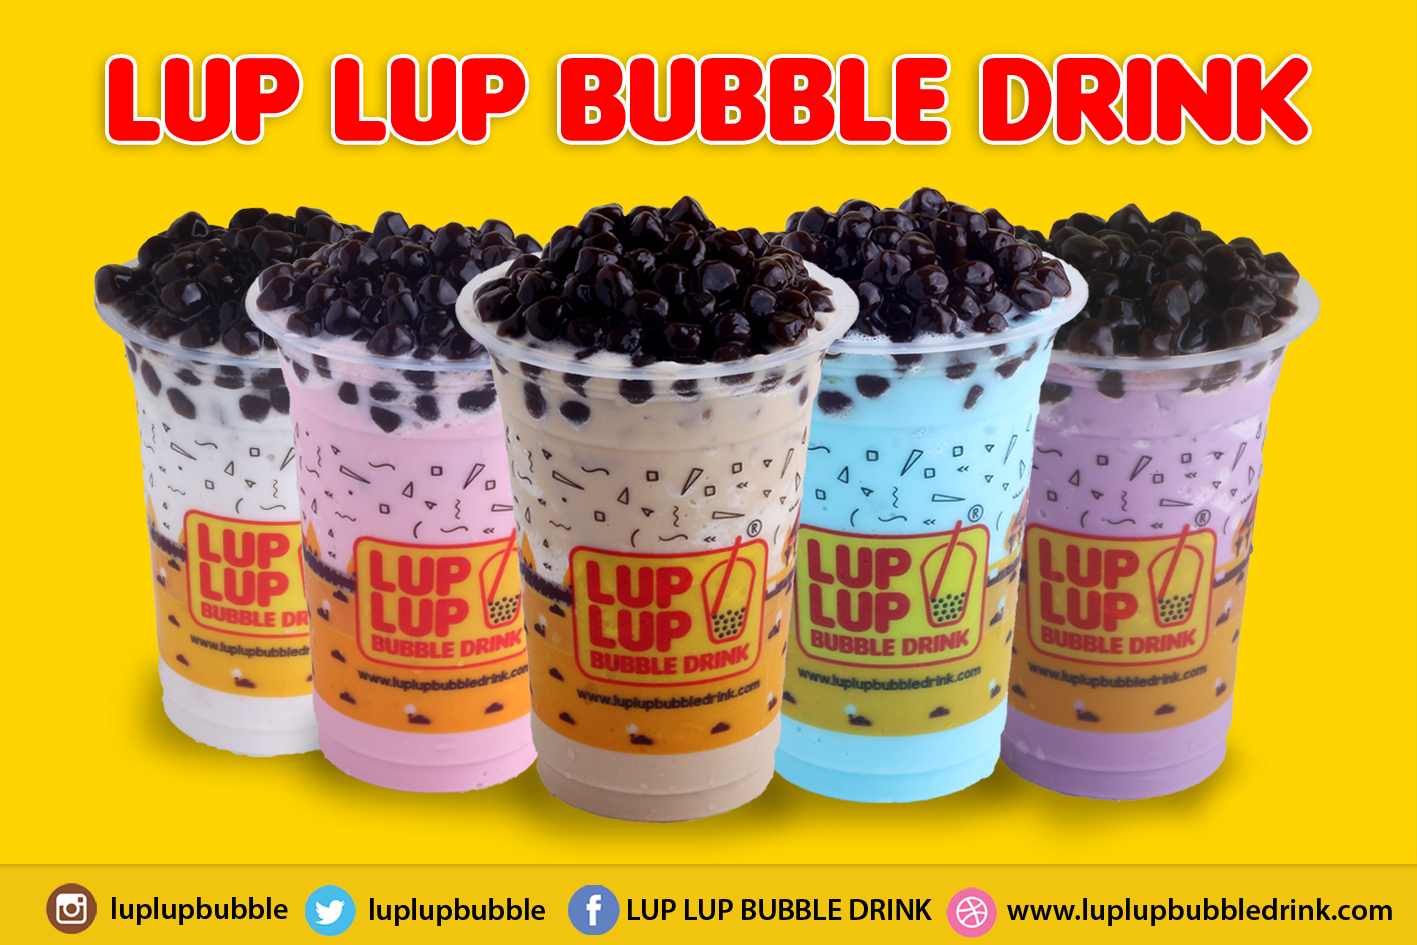 Dimana Agen Franchise Murah Lup Lup Bubble Drink